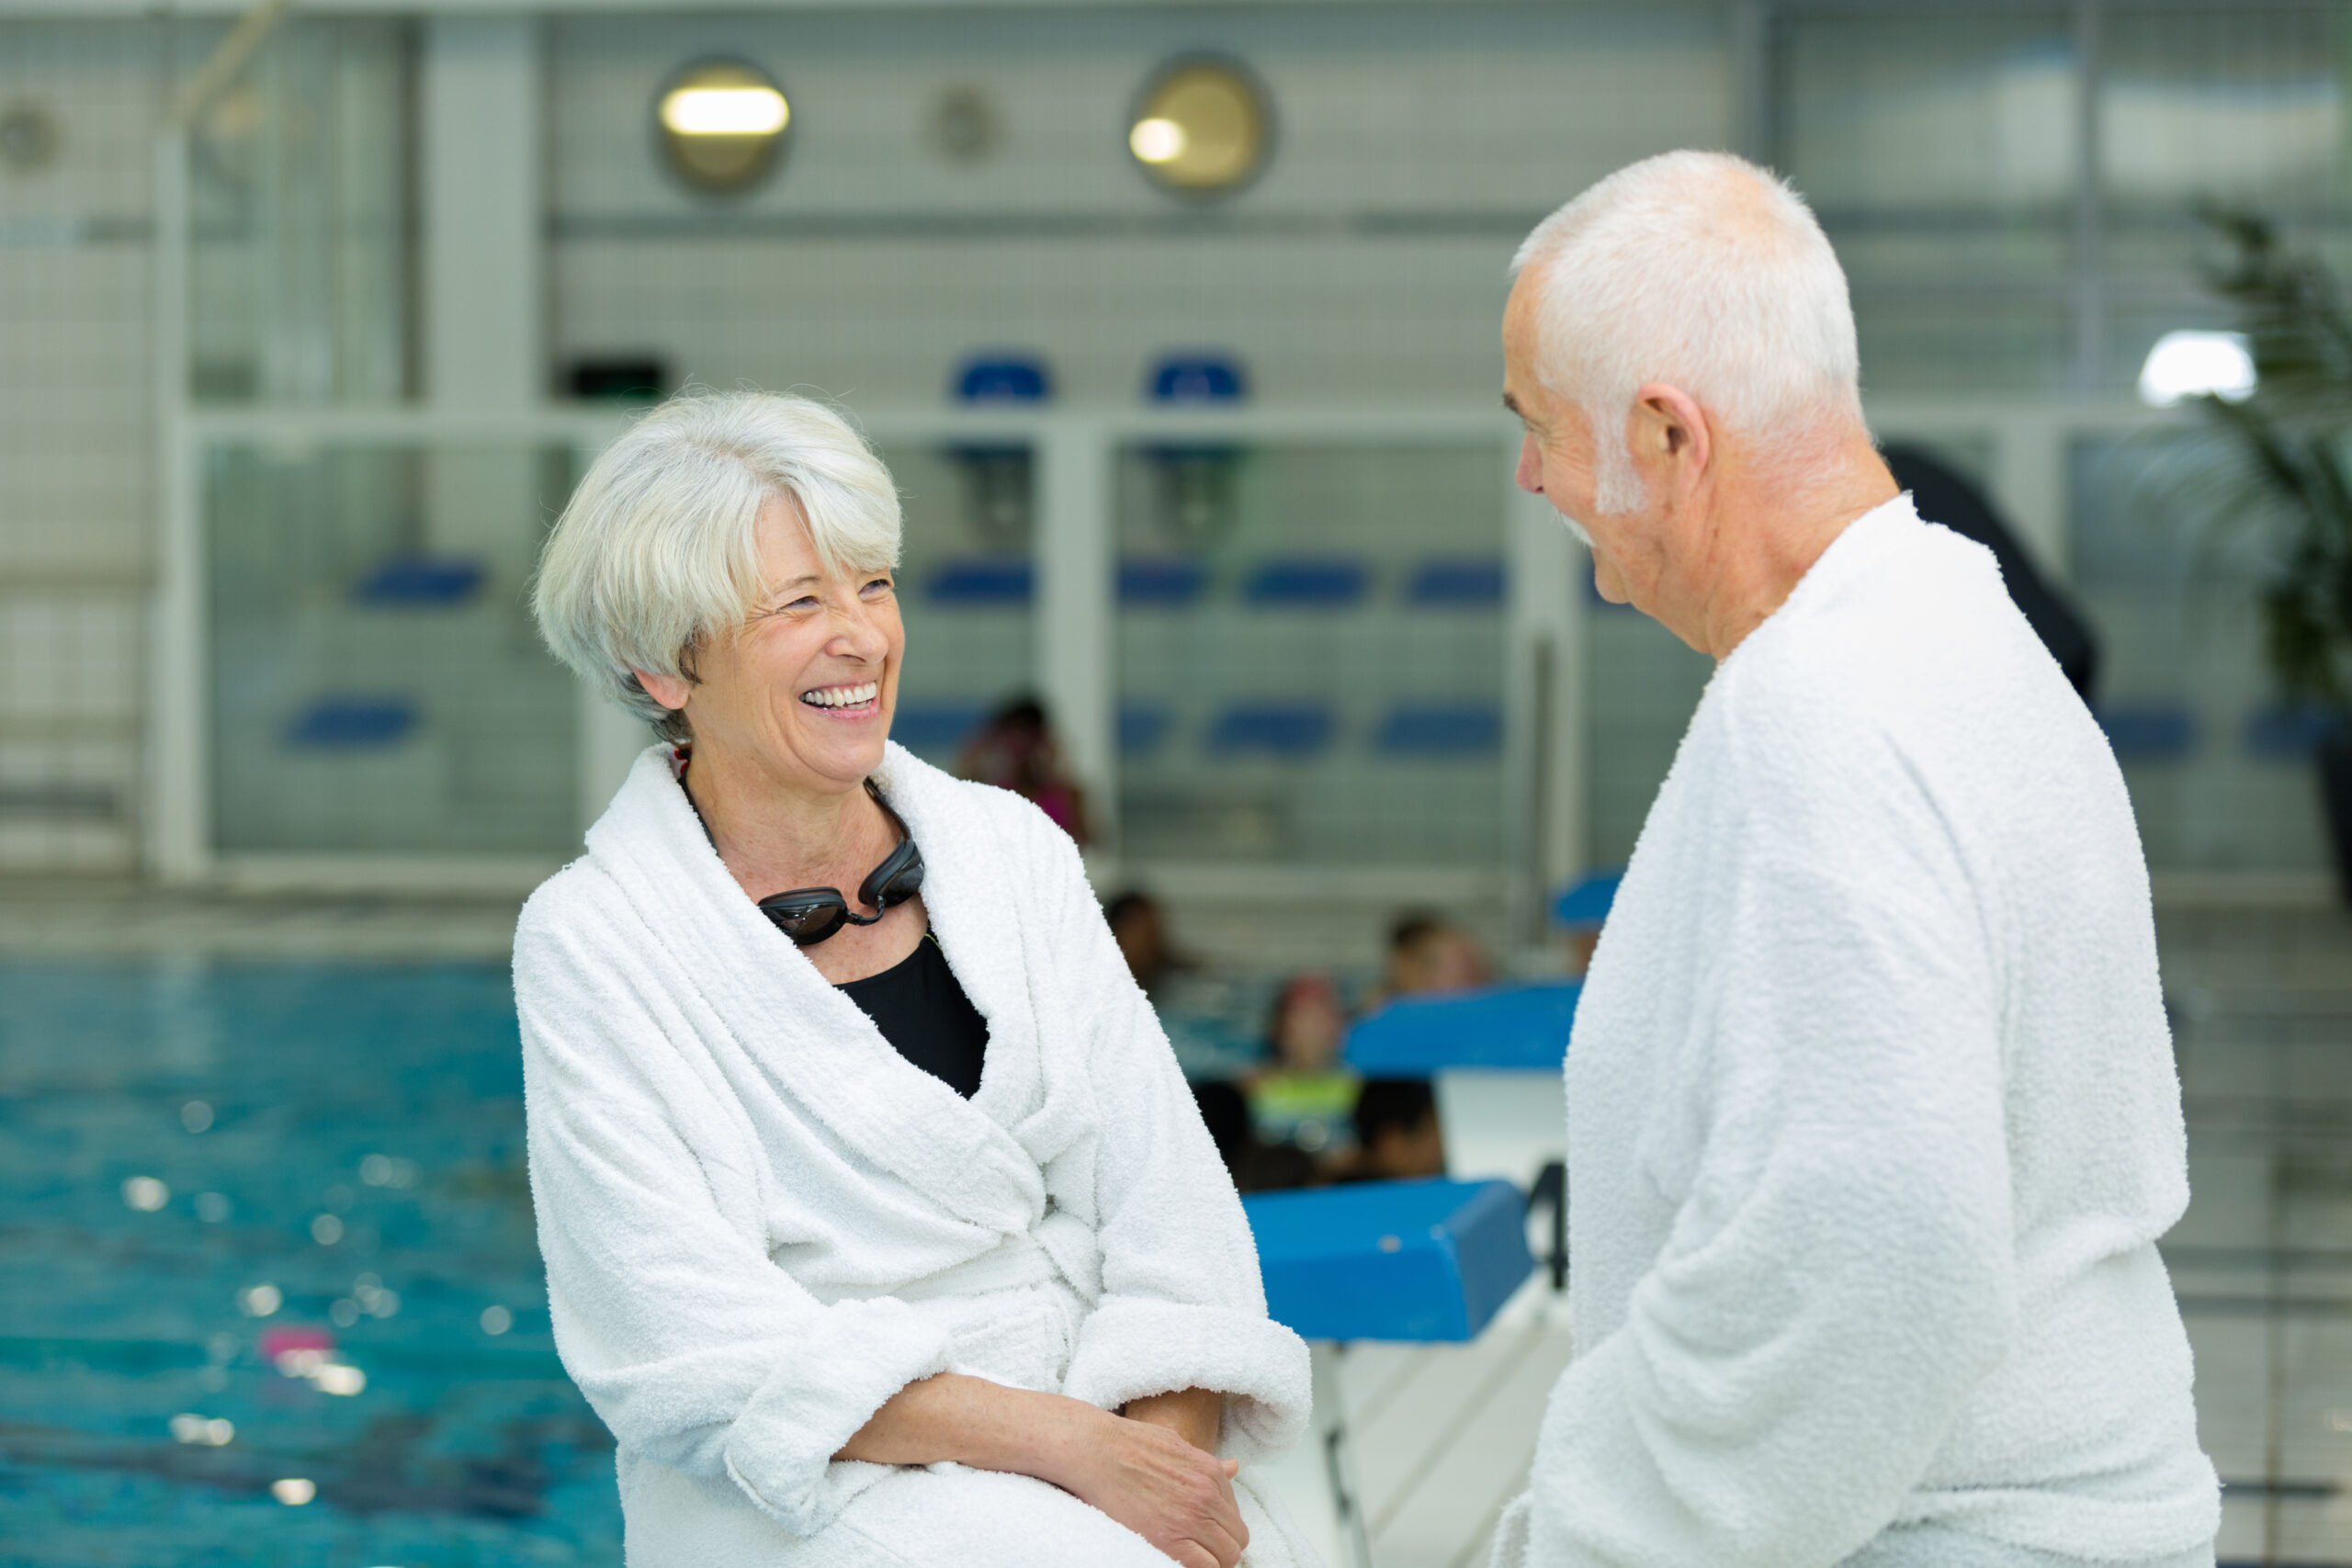 senior couple wearing bathrobes laughing by side of indoor pool